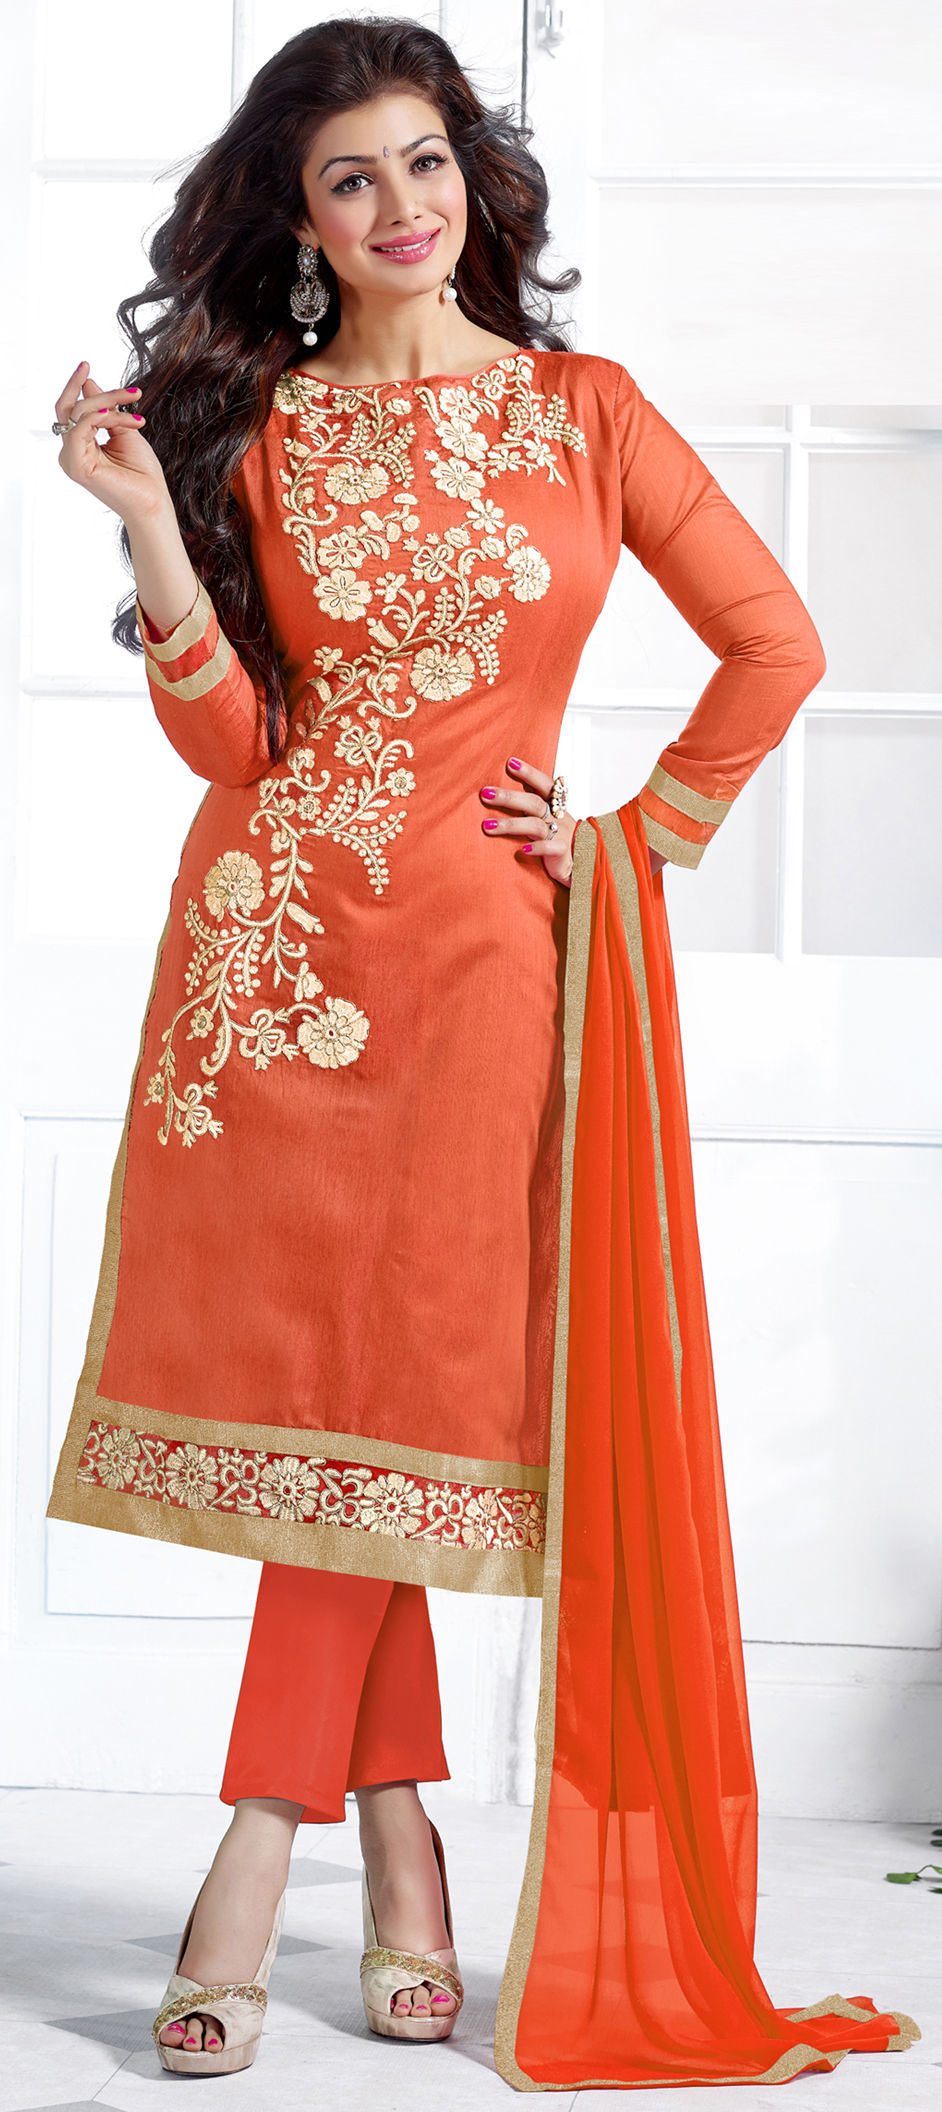 Chanderi Silk Bollywood Salwar Kameez in Orange with Lace work